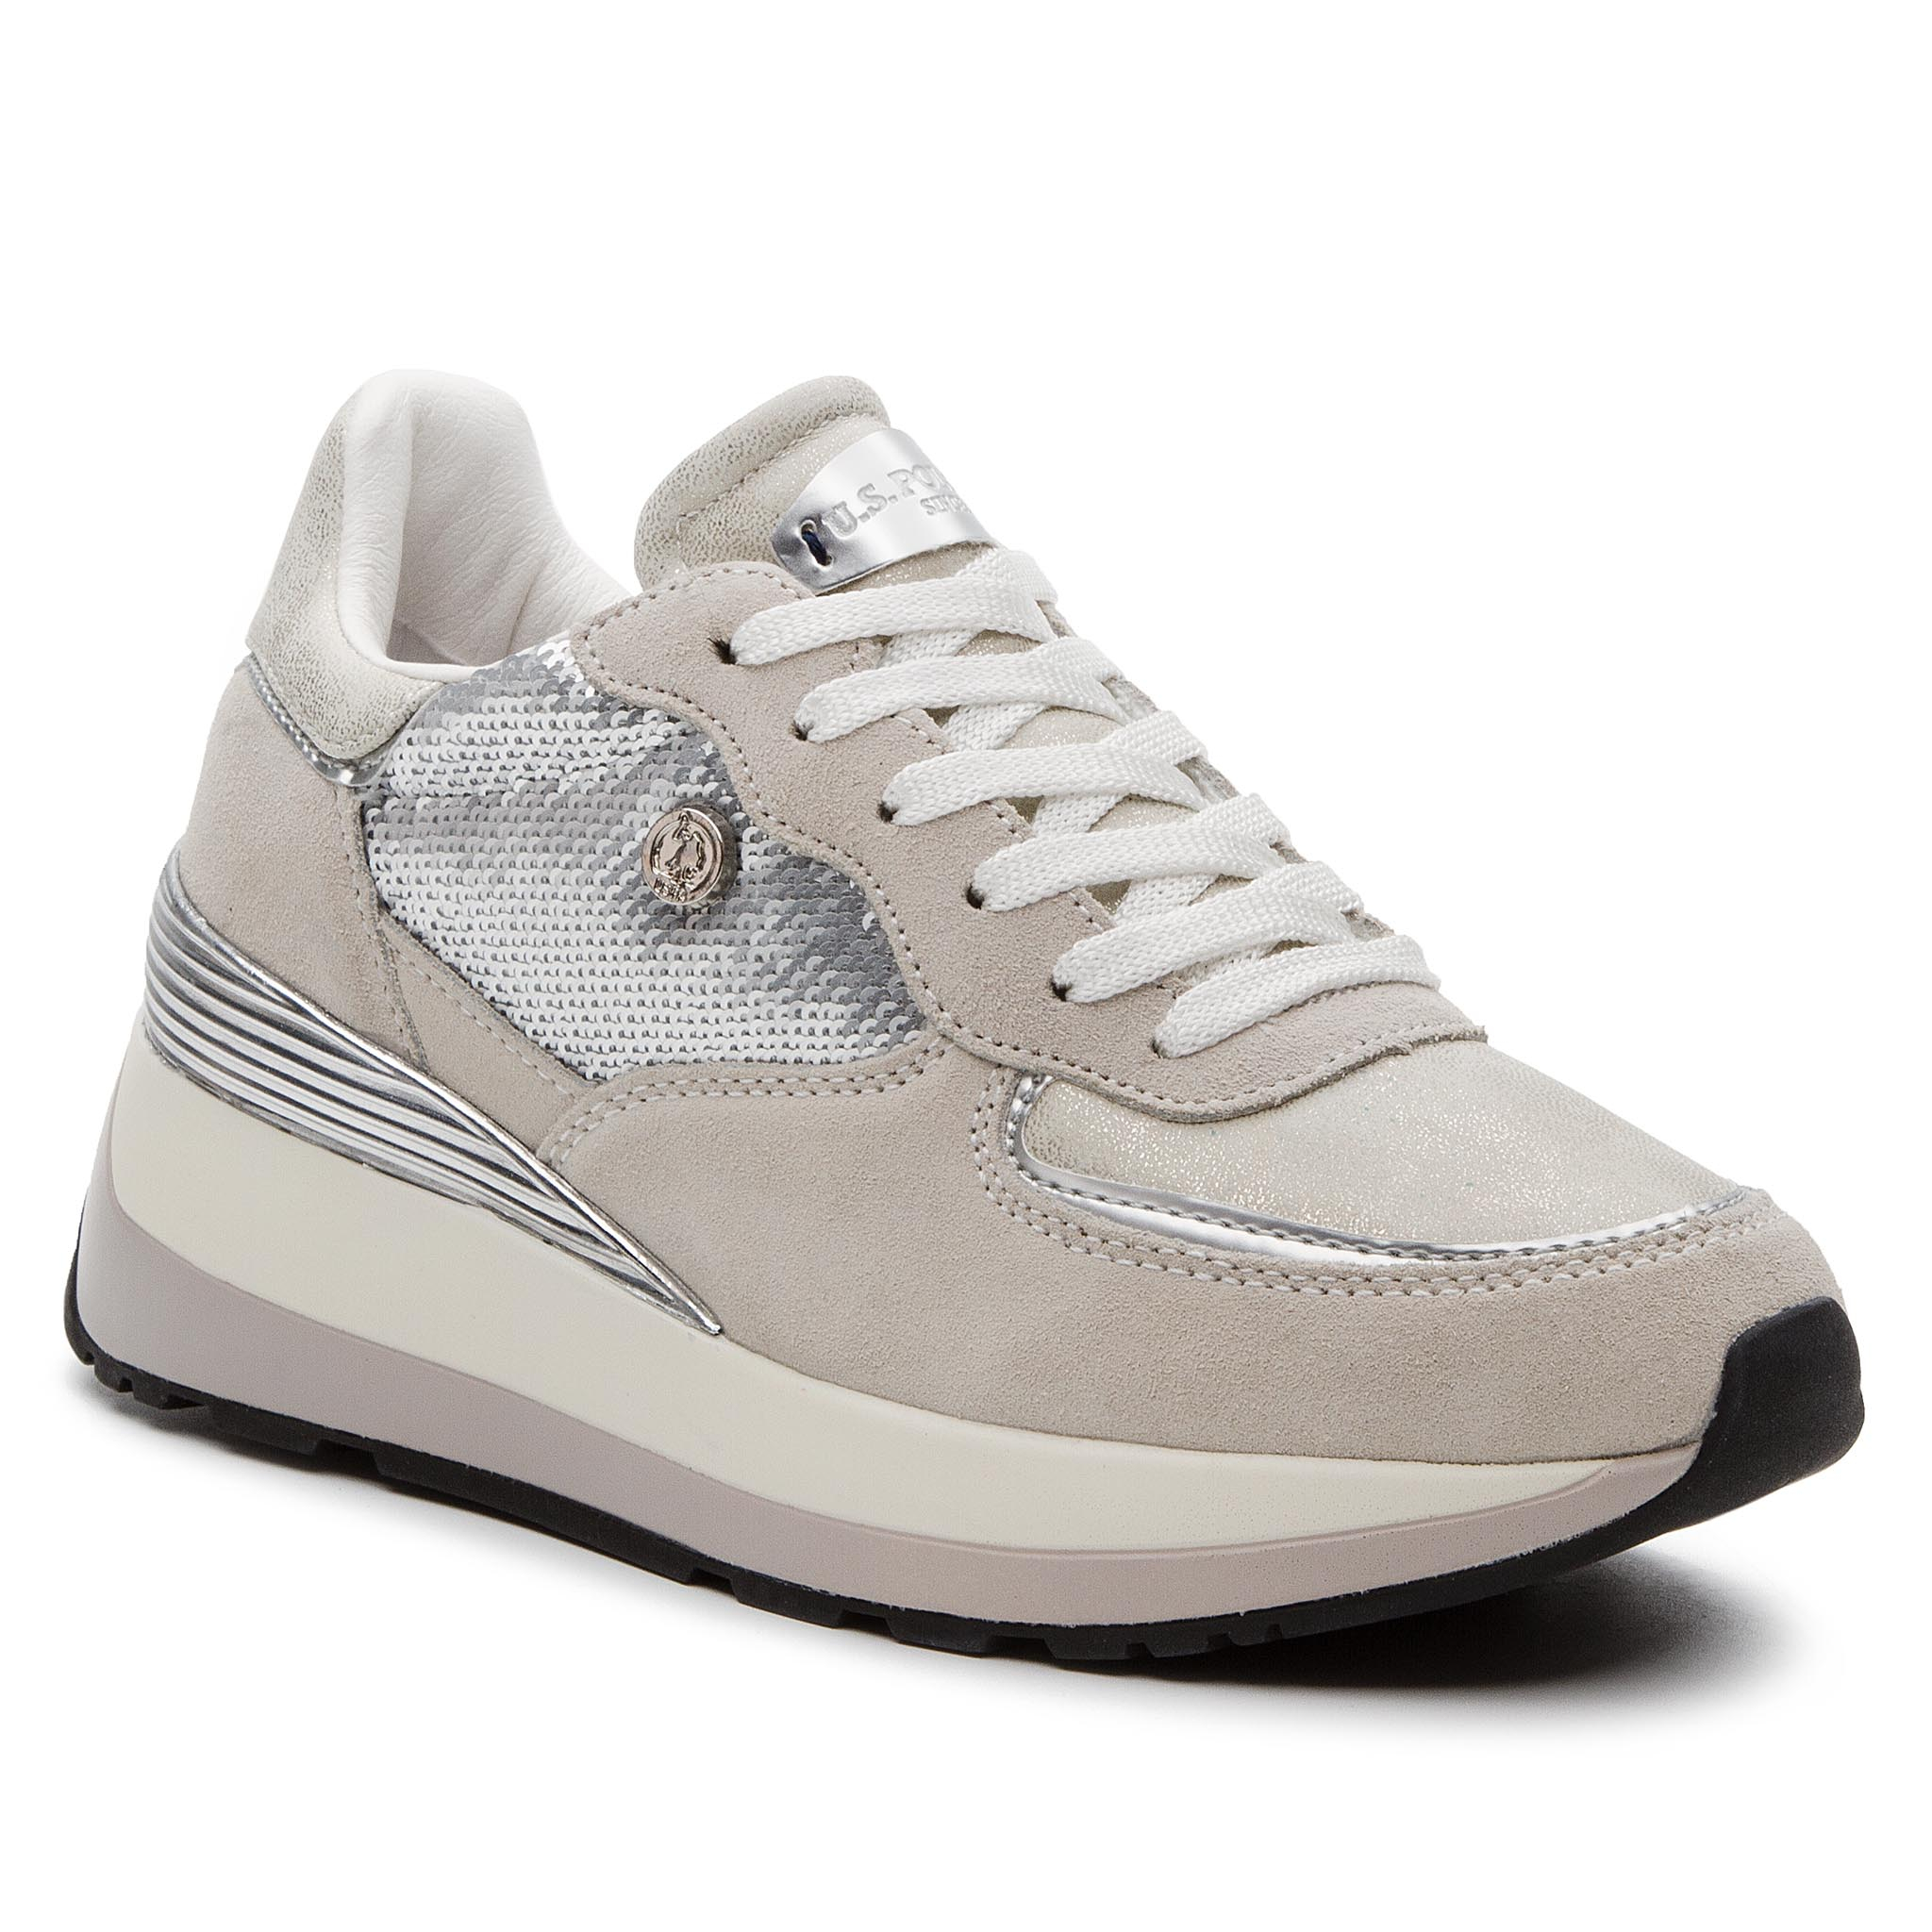 Sneakers U.S. POLO ASSN. - Valery1 Paillettes YLA4011W8/ST1 Sil